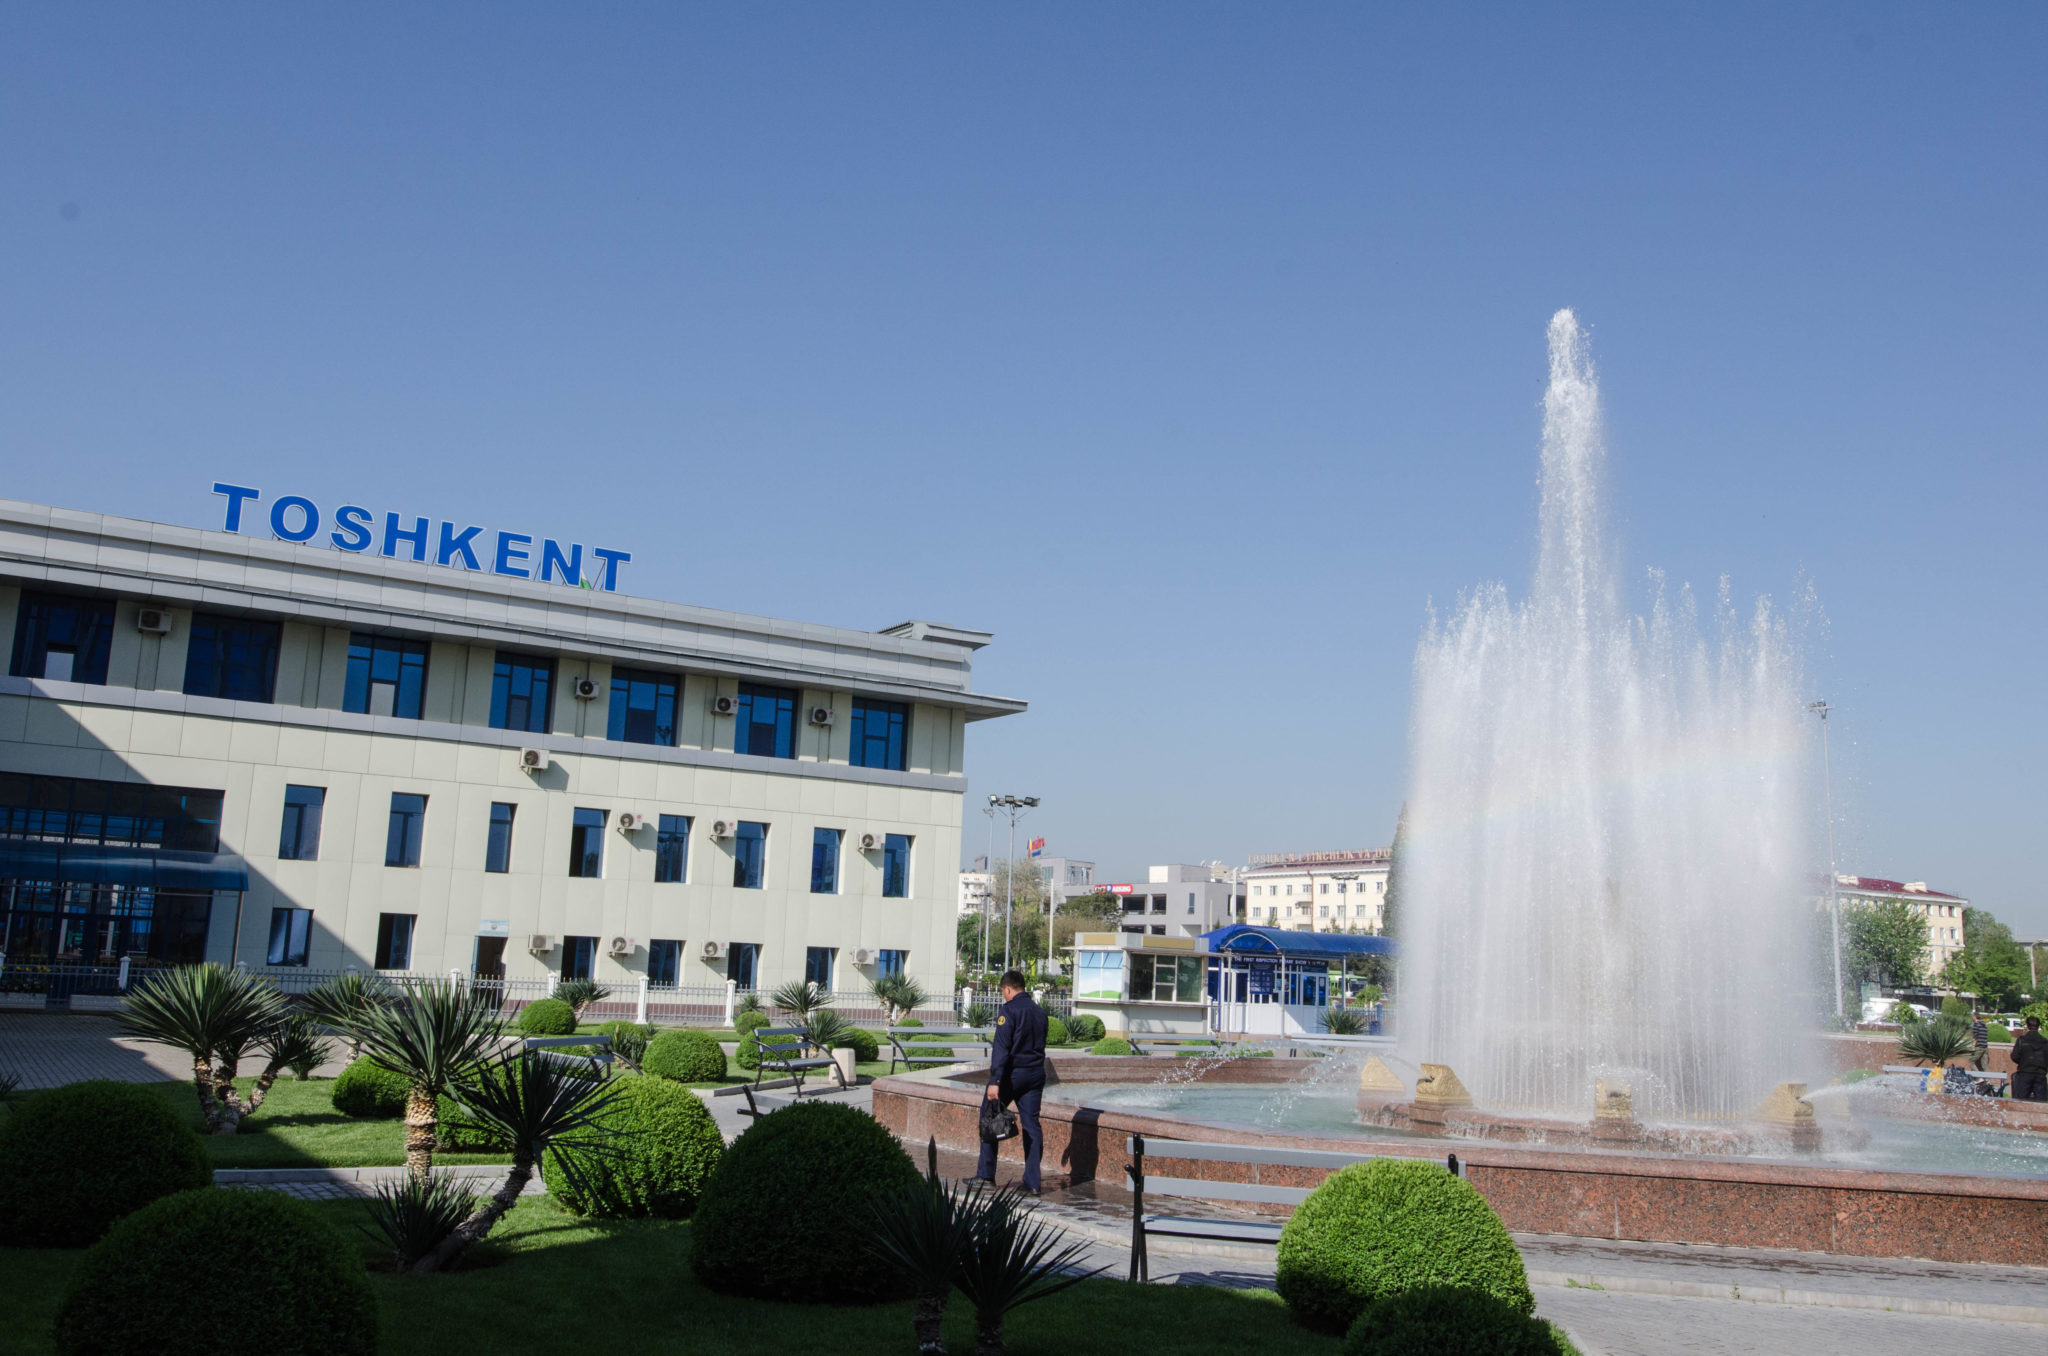 Architektur in Taschkent